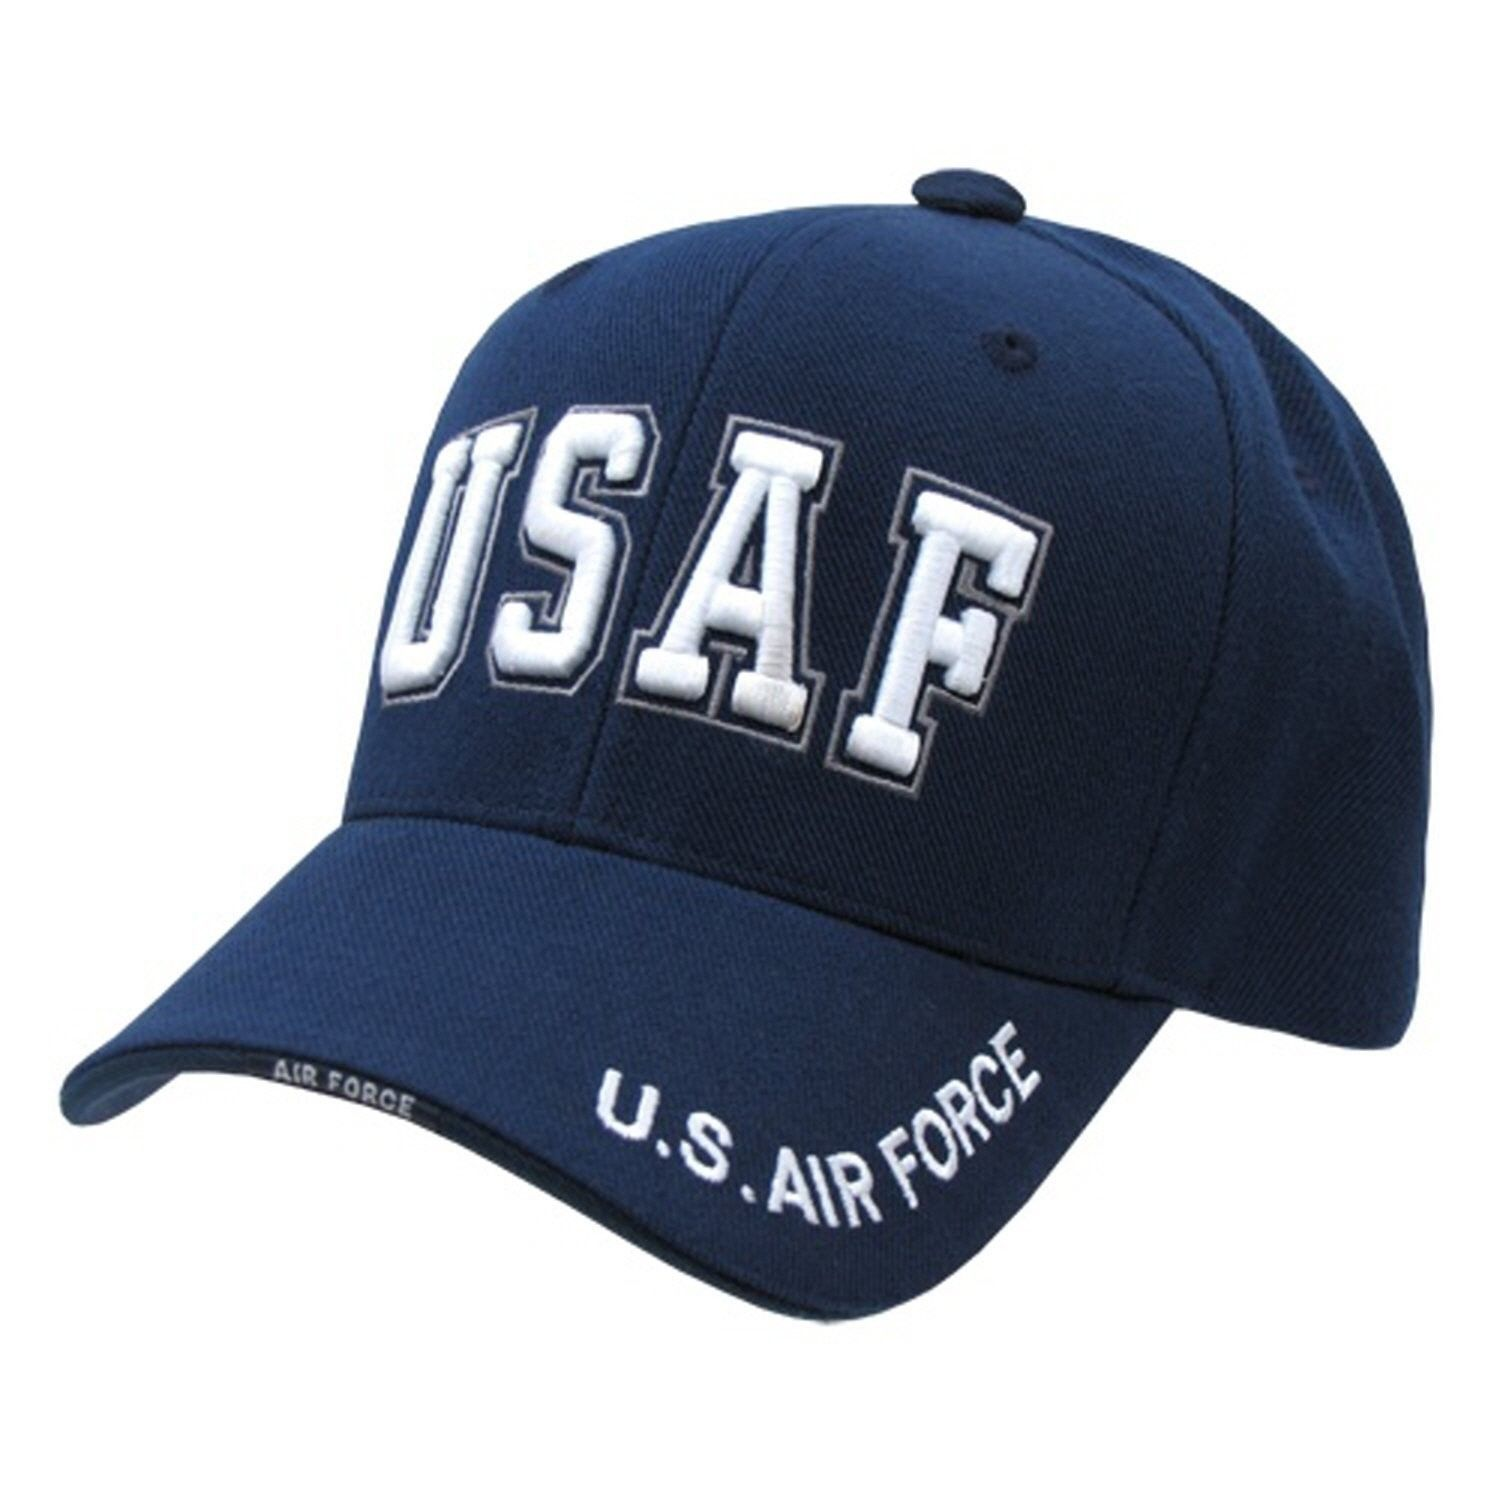 8ef77288a11 Navy Blue United States Usaf Air Force Text Military Baseball Cap Hat Caps  Hats